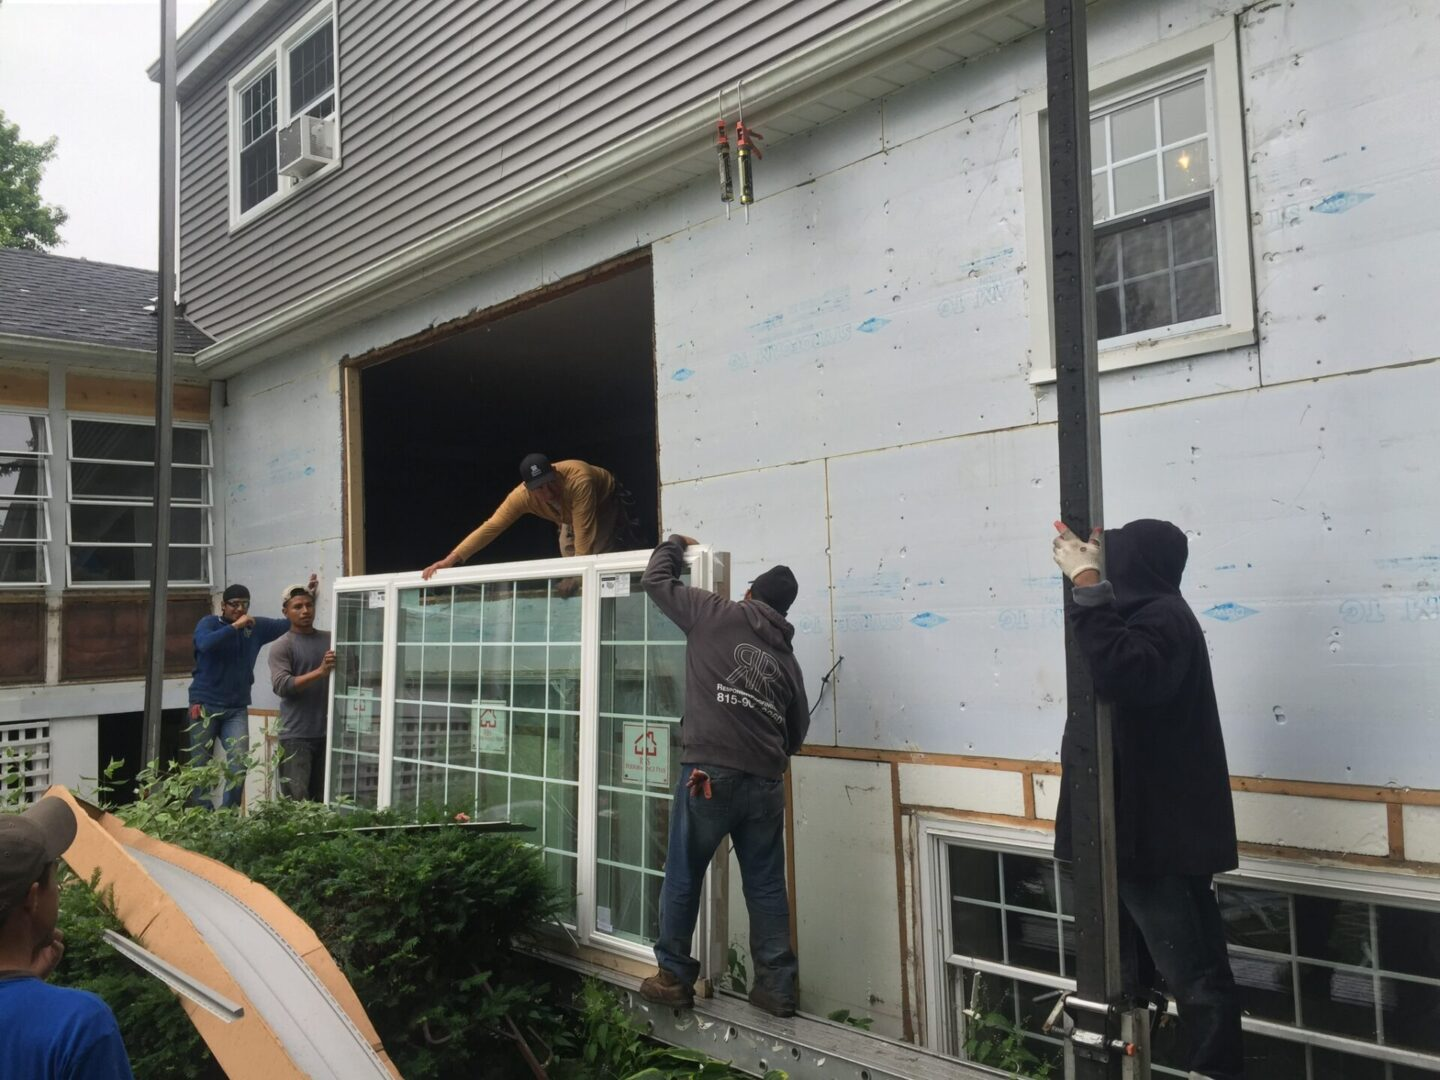 Personnel putting up a window